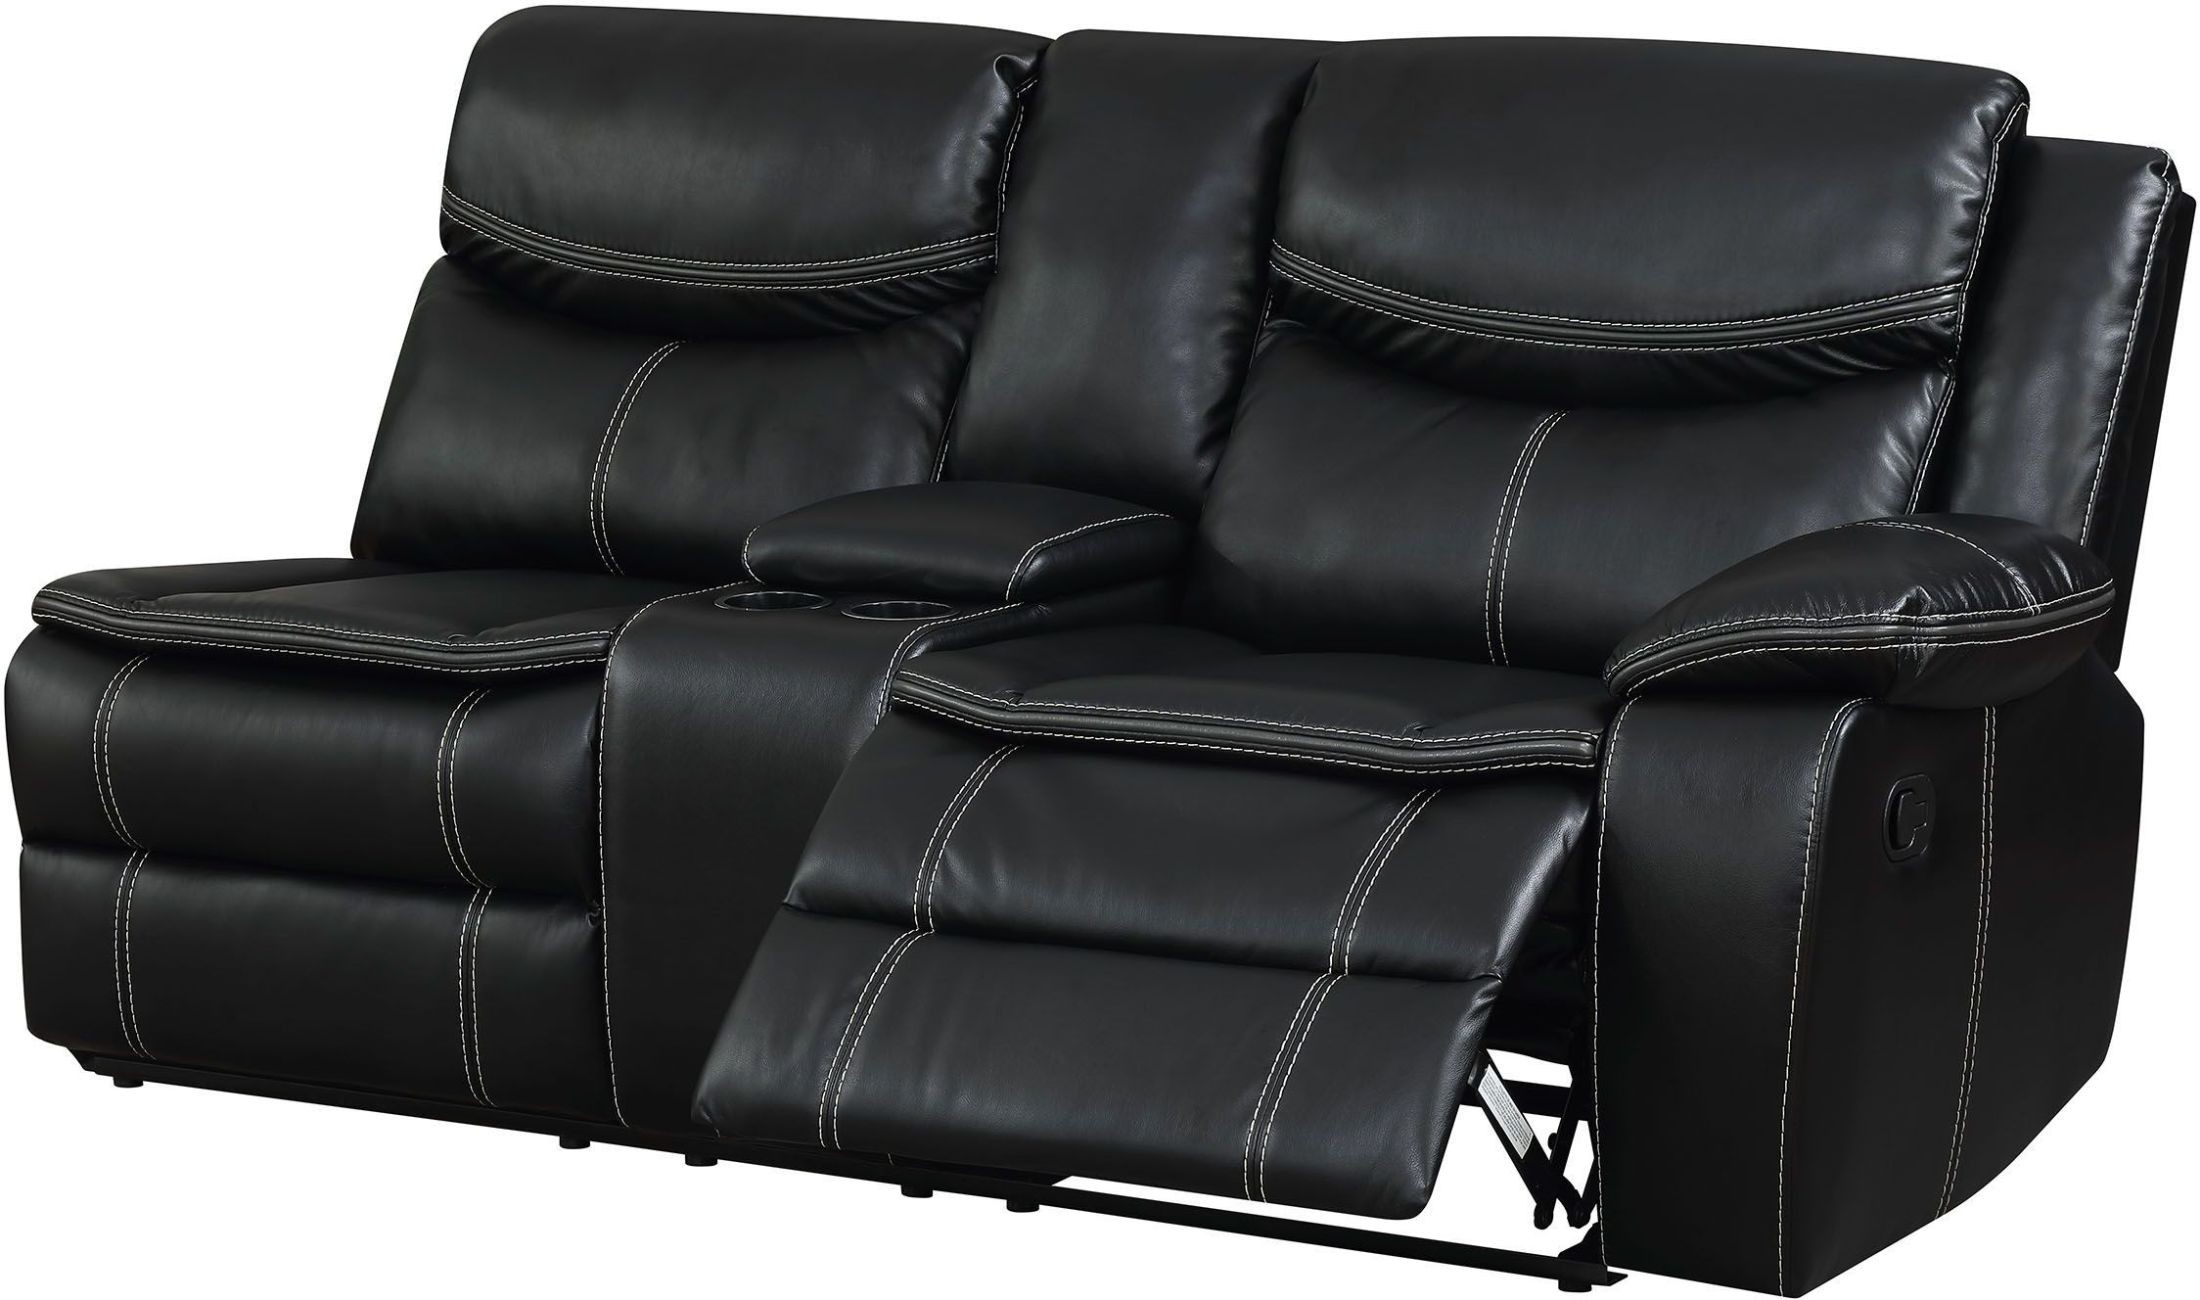 Gatria II Black Reclining Sectional With Console from Furniture of